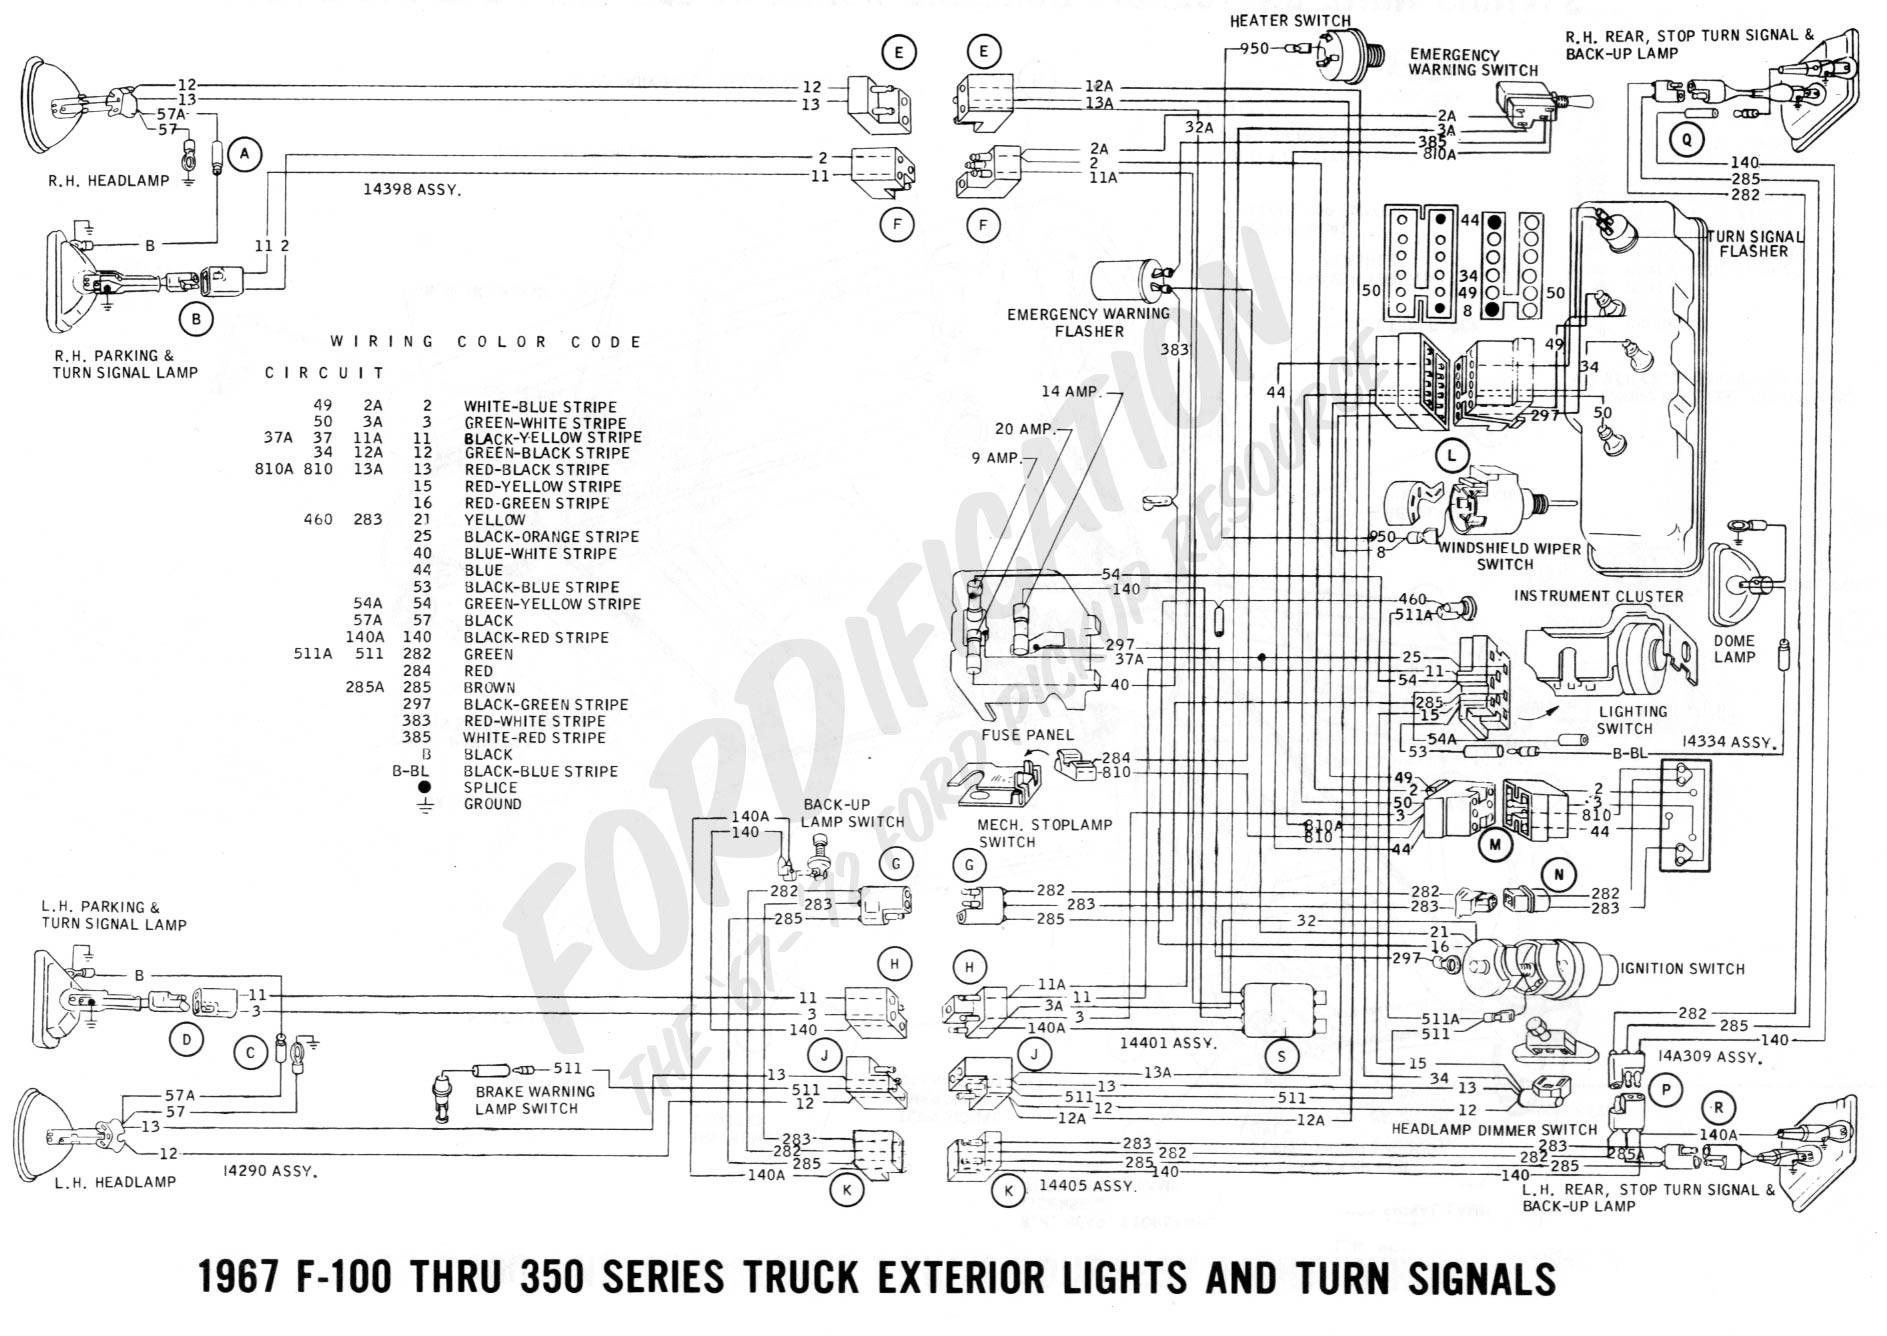 77 f250 wiring diagram schematics wiring diagrams u2022 rh seniorlivinguniversity co 1977 Ford F100 66 Ford Pickup